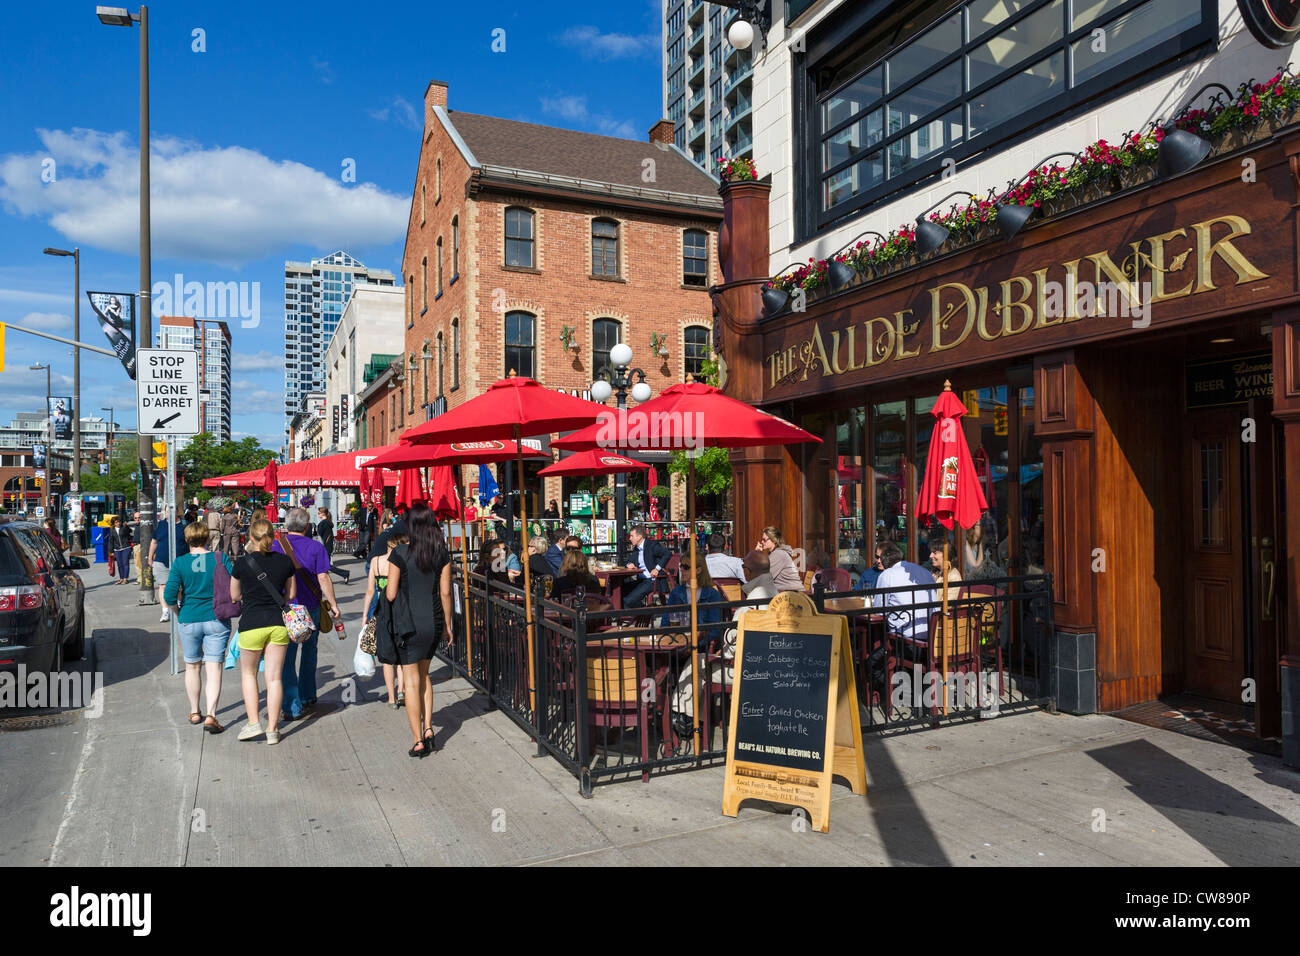 The aulde dubliner pub and restaurant on george street in